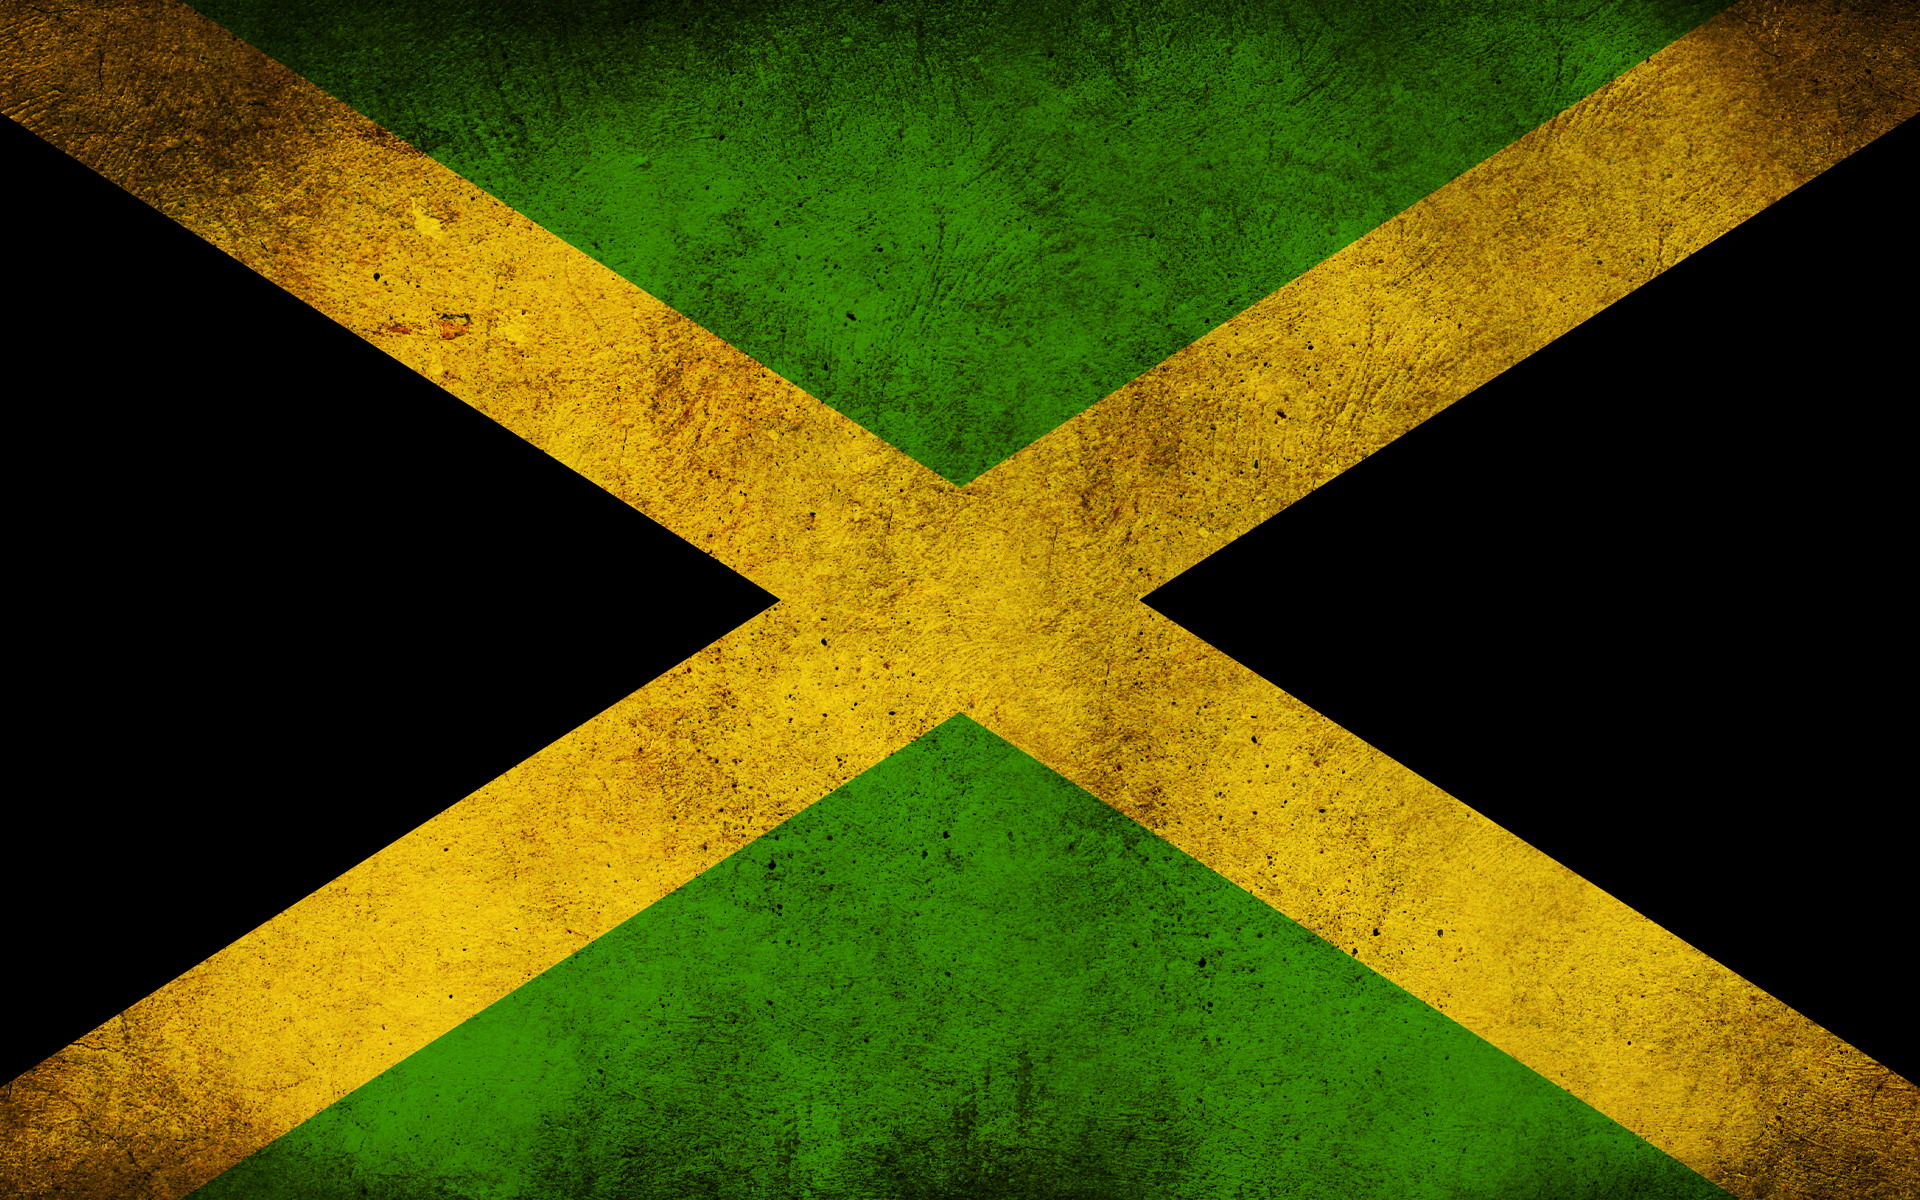 Jamaican Flag Wallpapers Jamaican Flag Myspace Backgrounds Jamaican 1920x1200